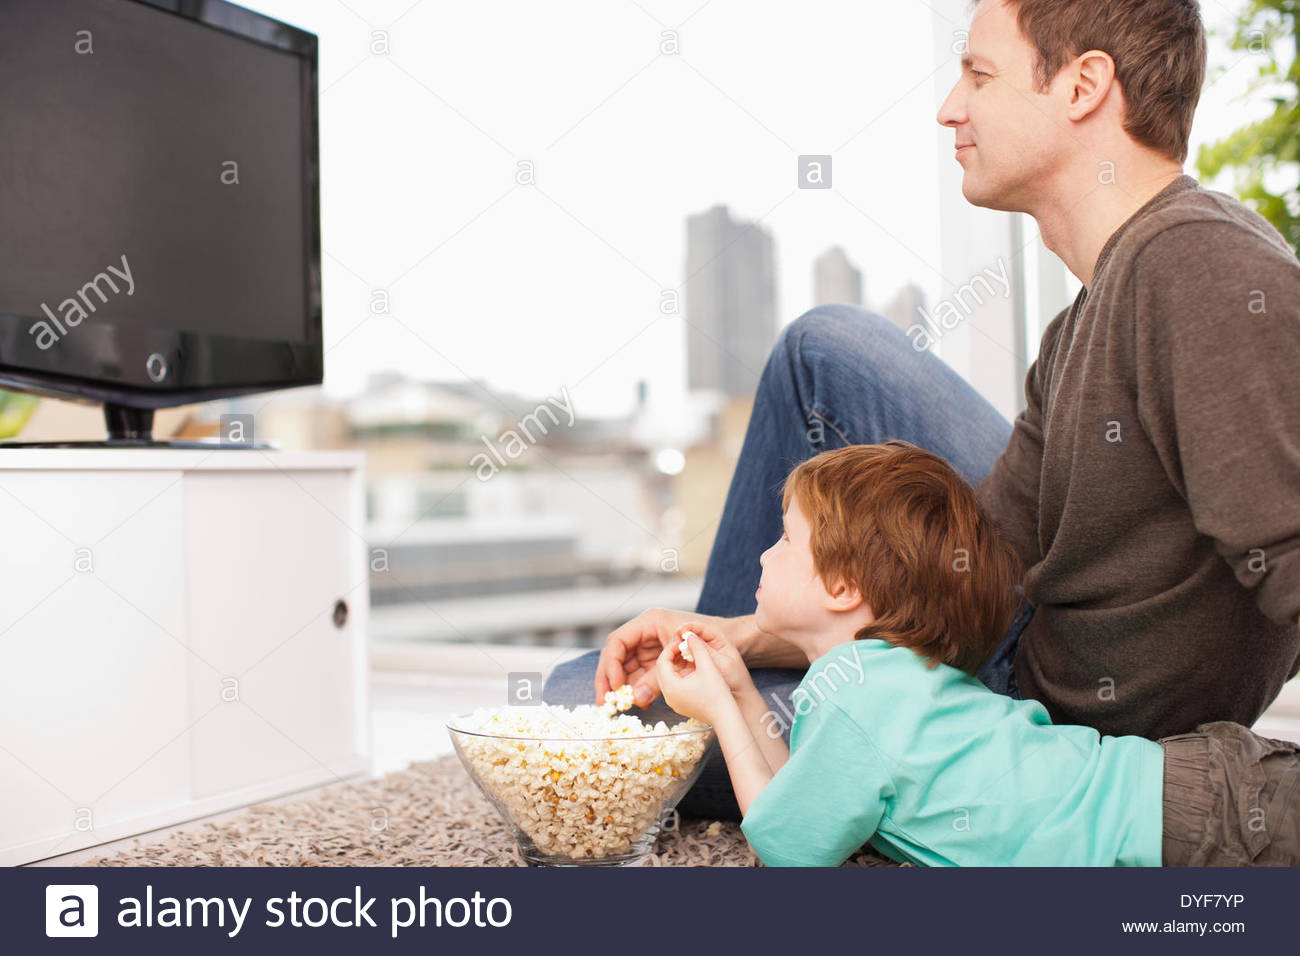 Father and son watching television - Stock Image